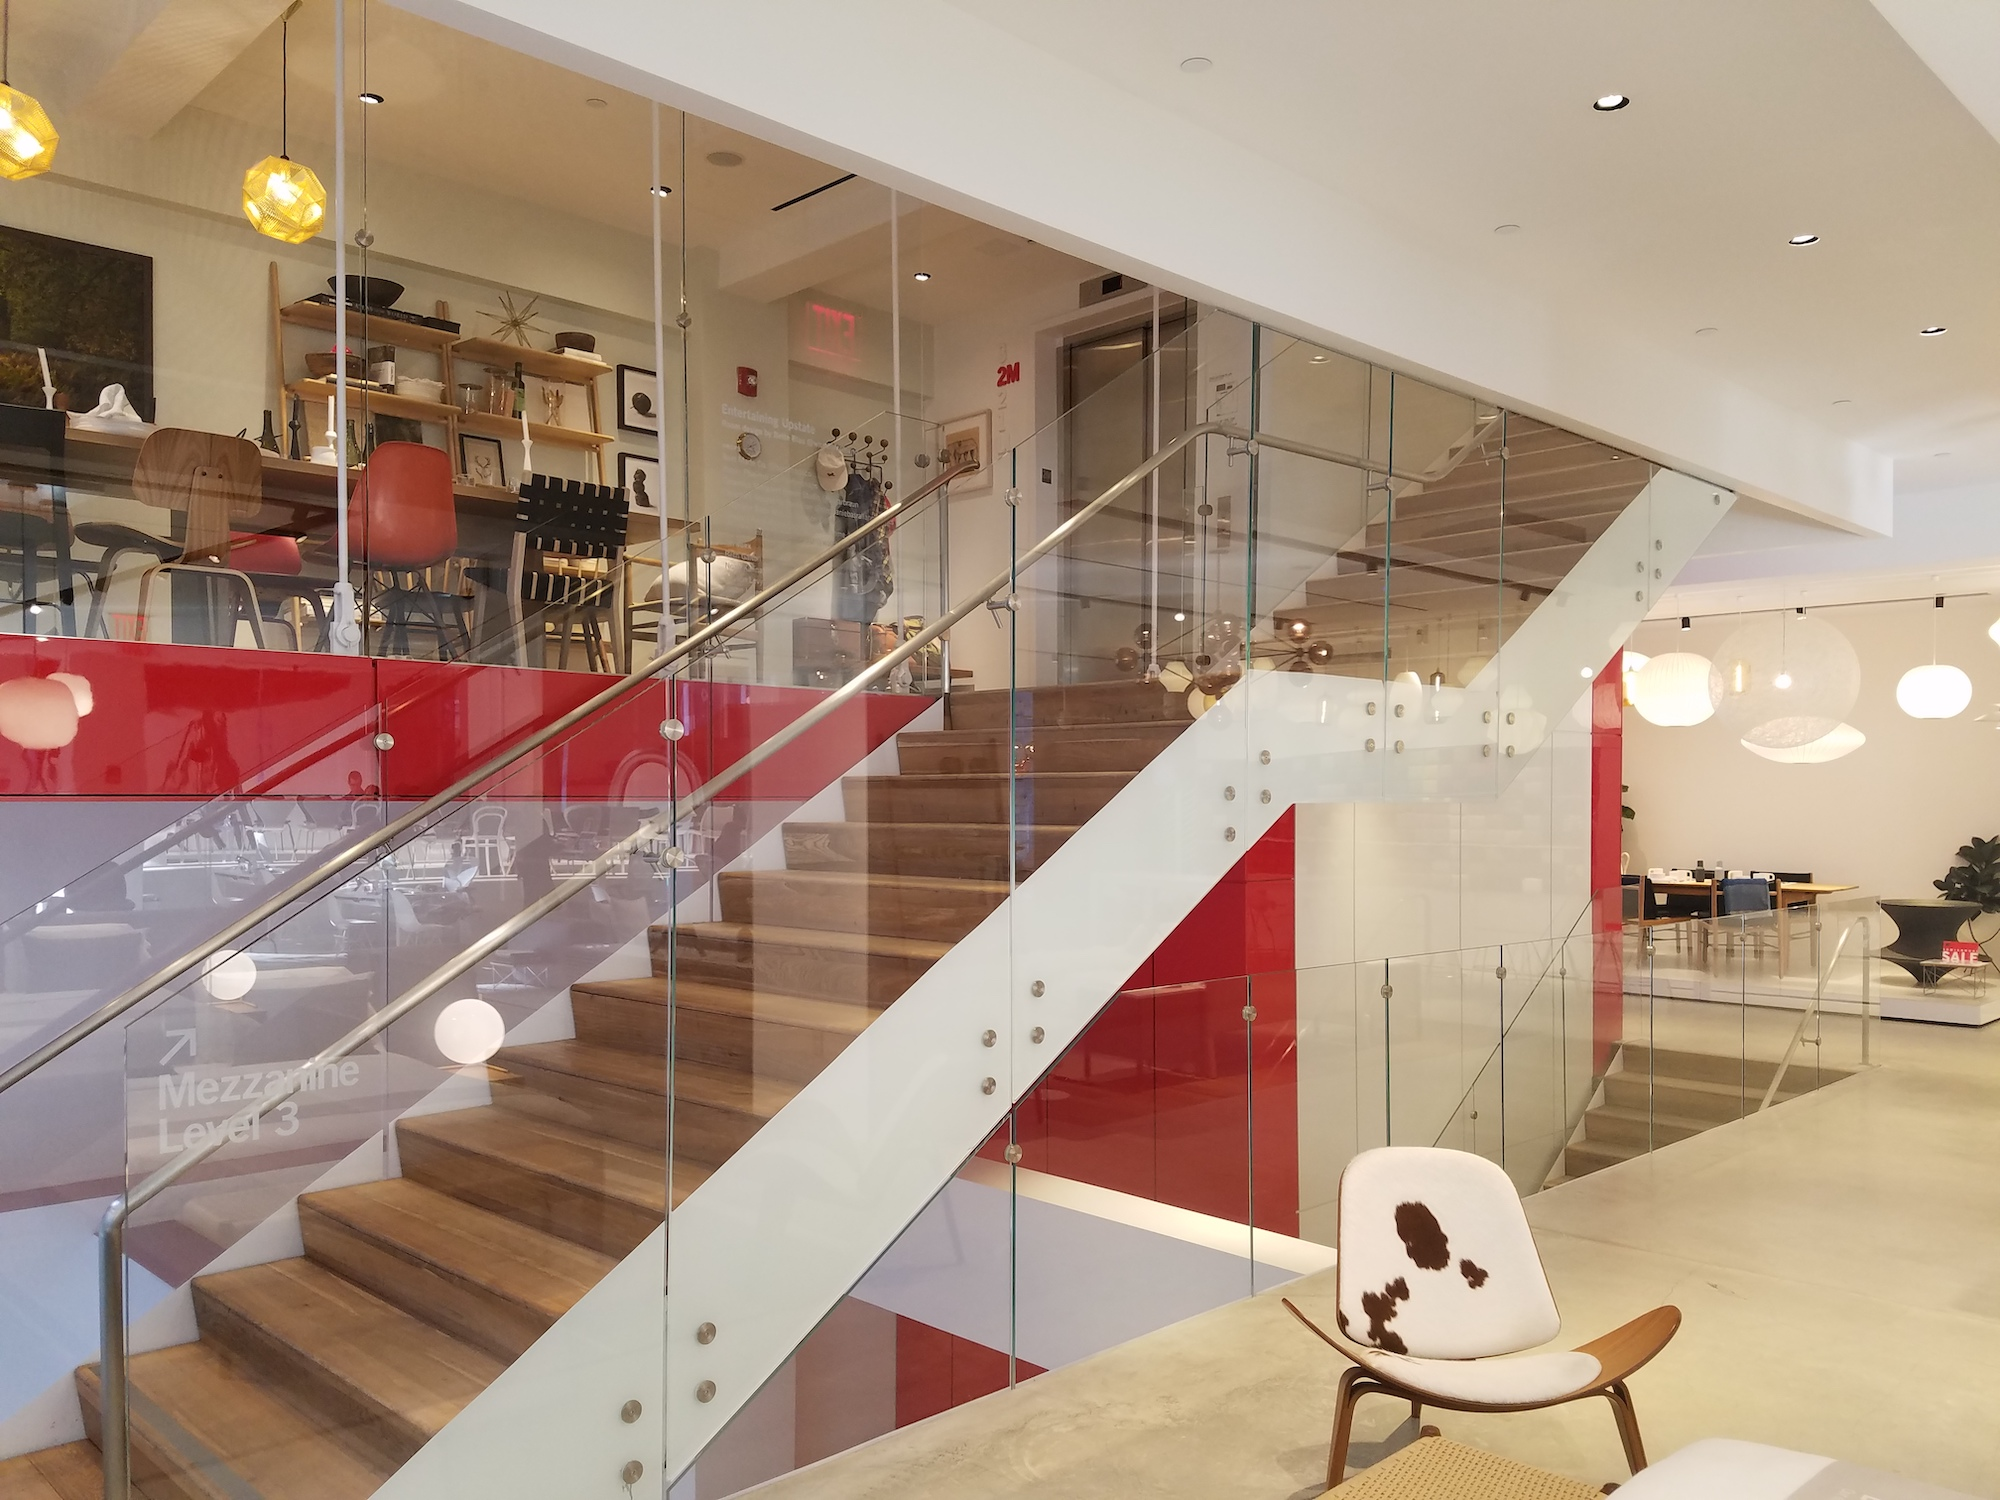 Synergi - Design Within Reach Office